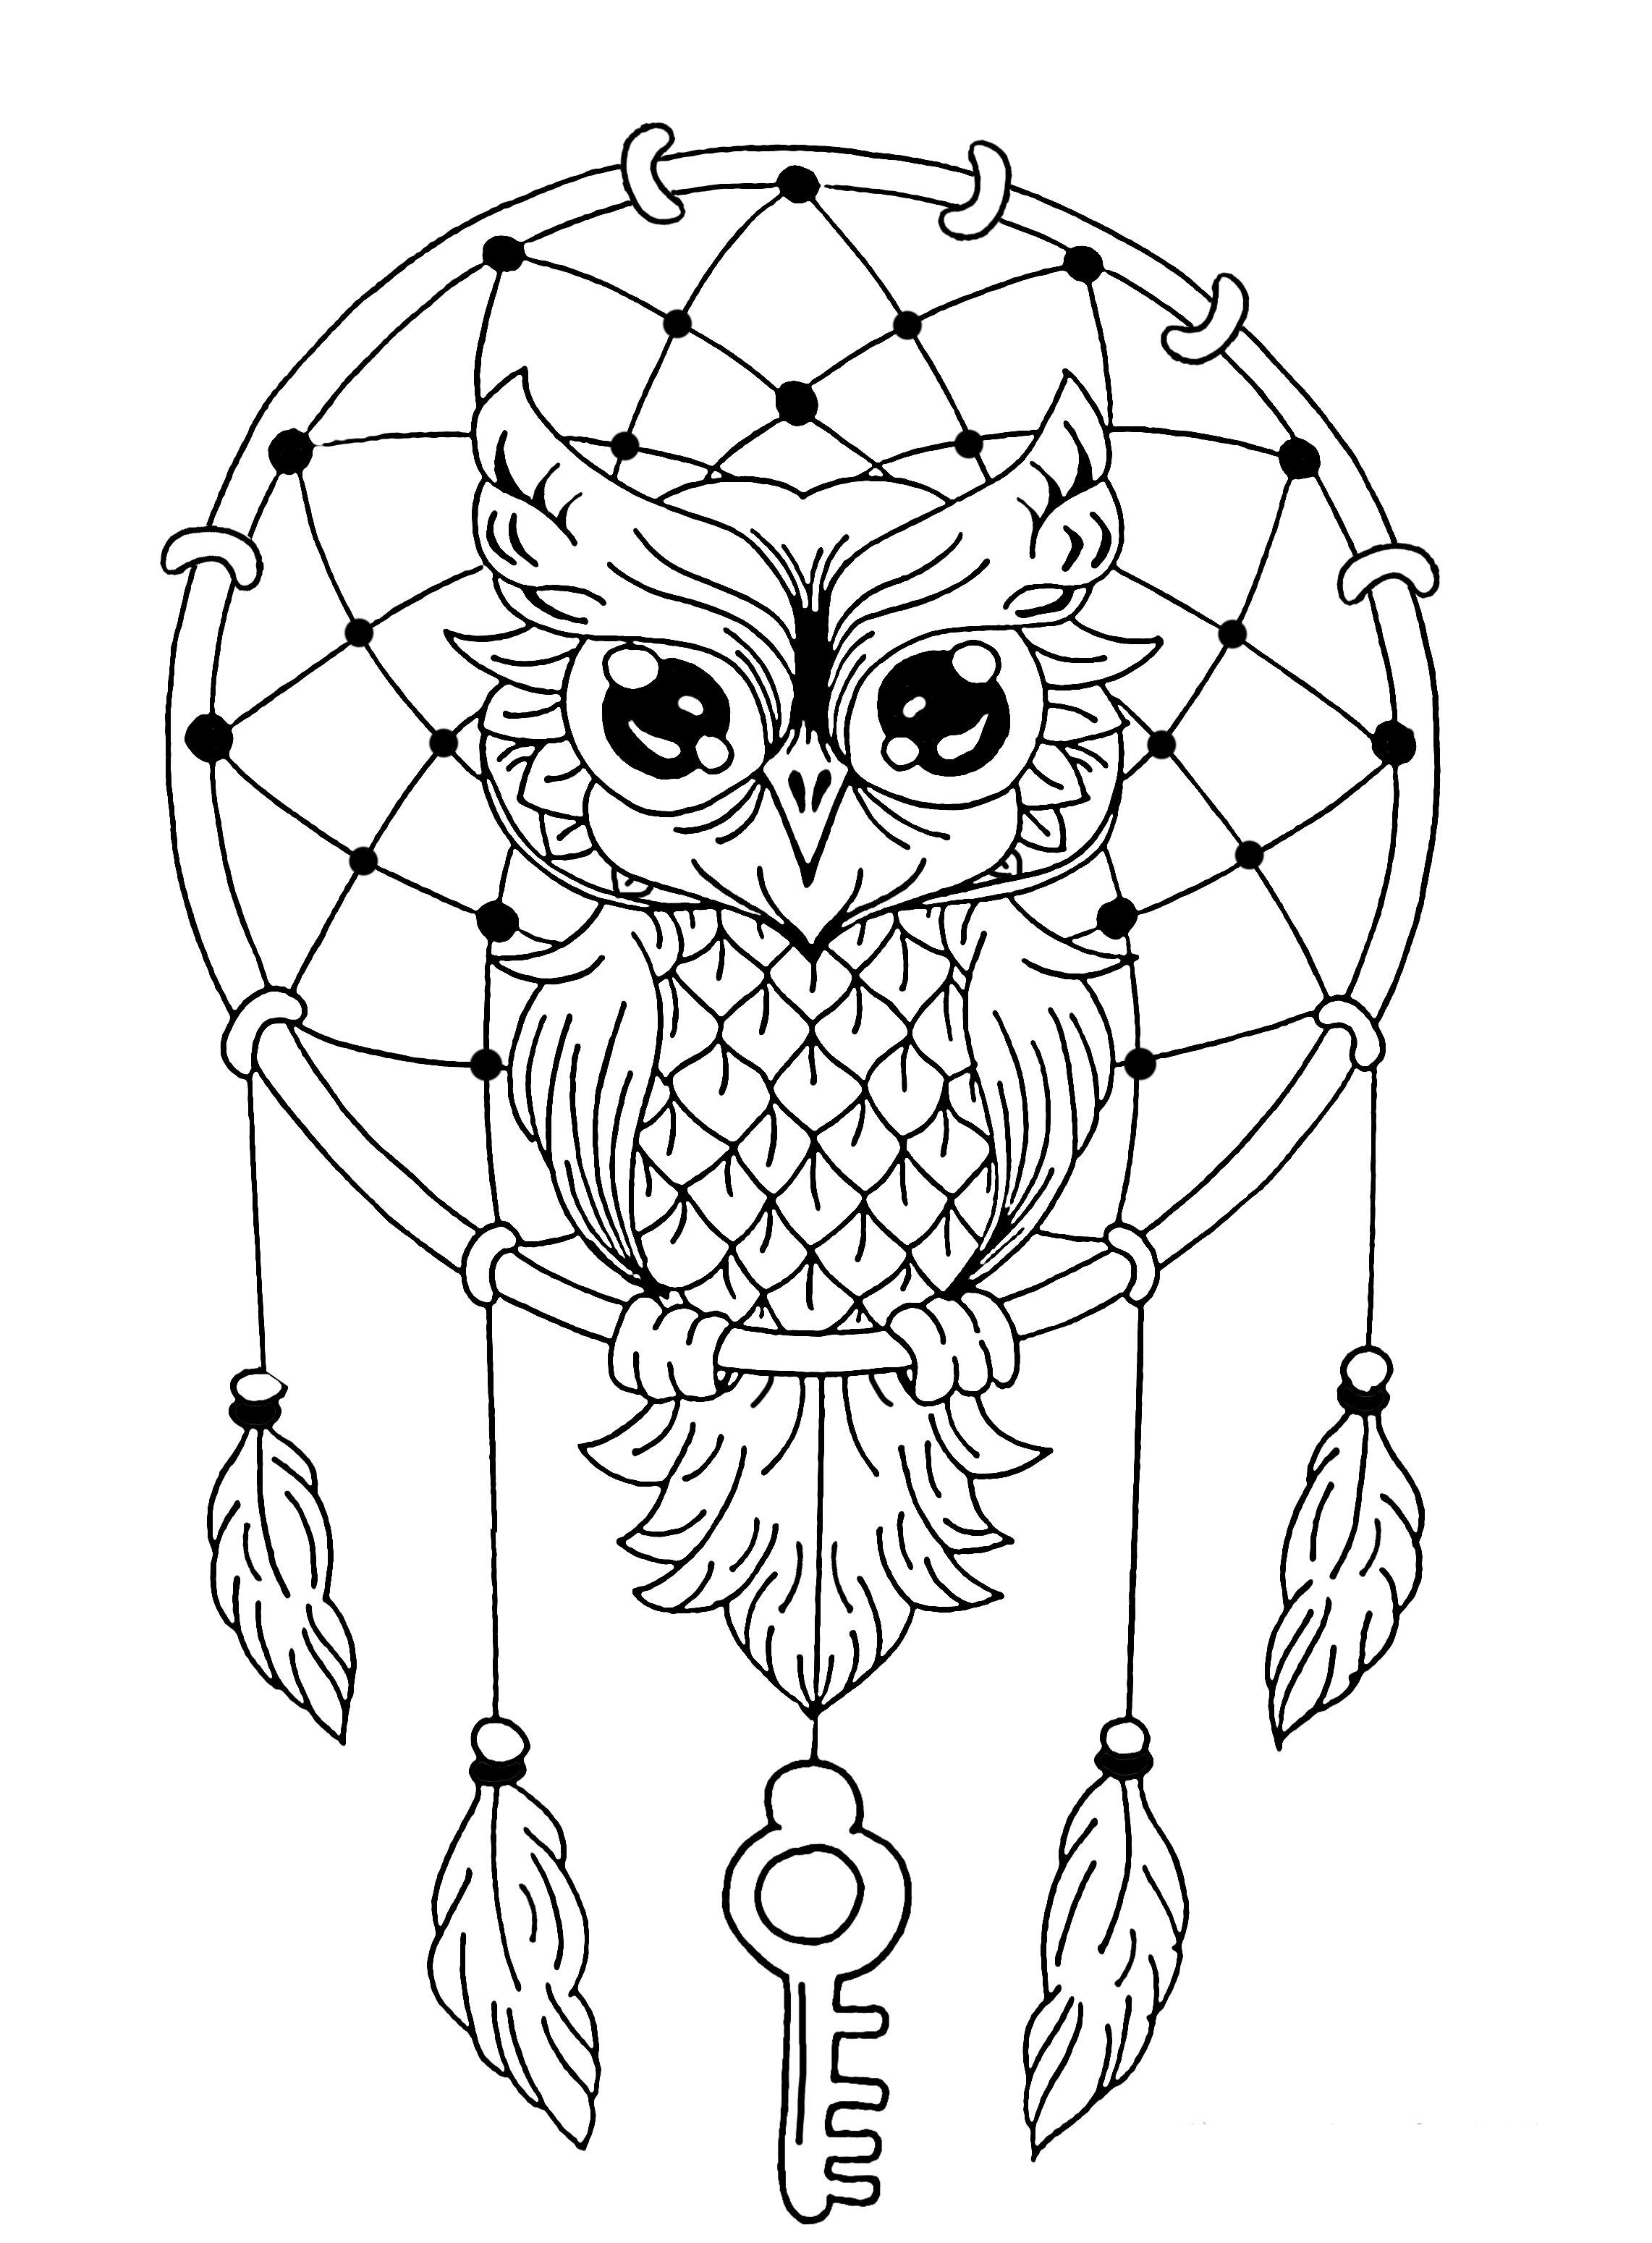 29 Last Concept Coloring Mandala Owl | Adult Coloring Pages